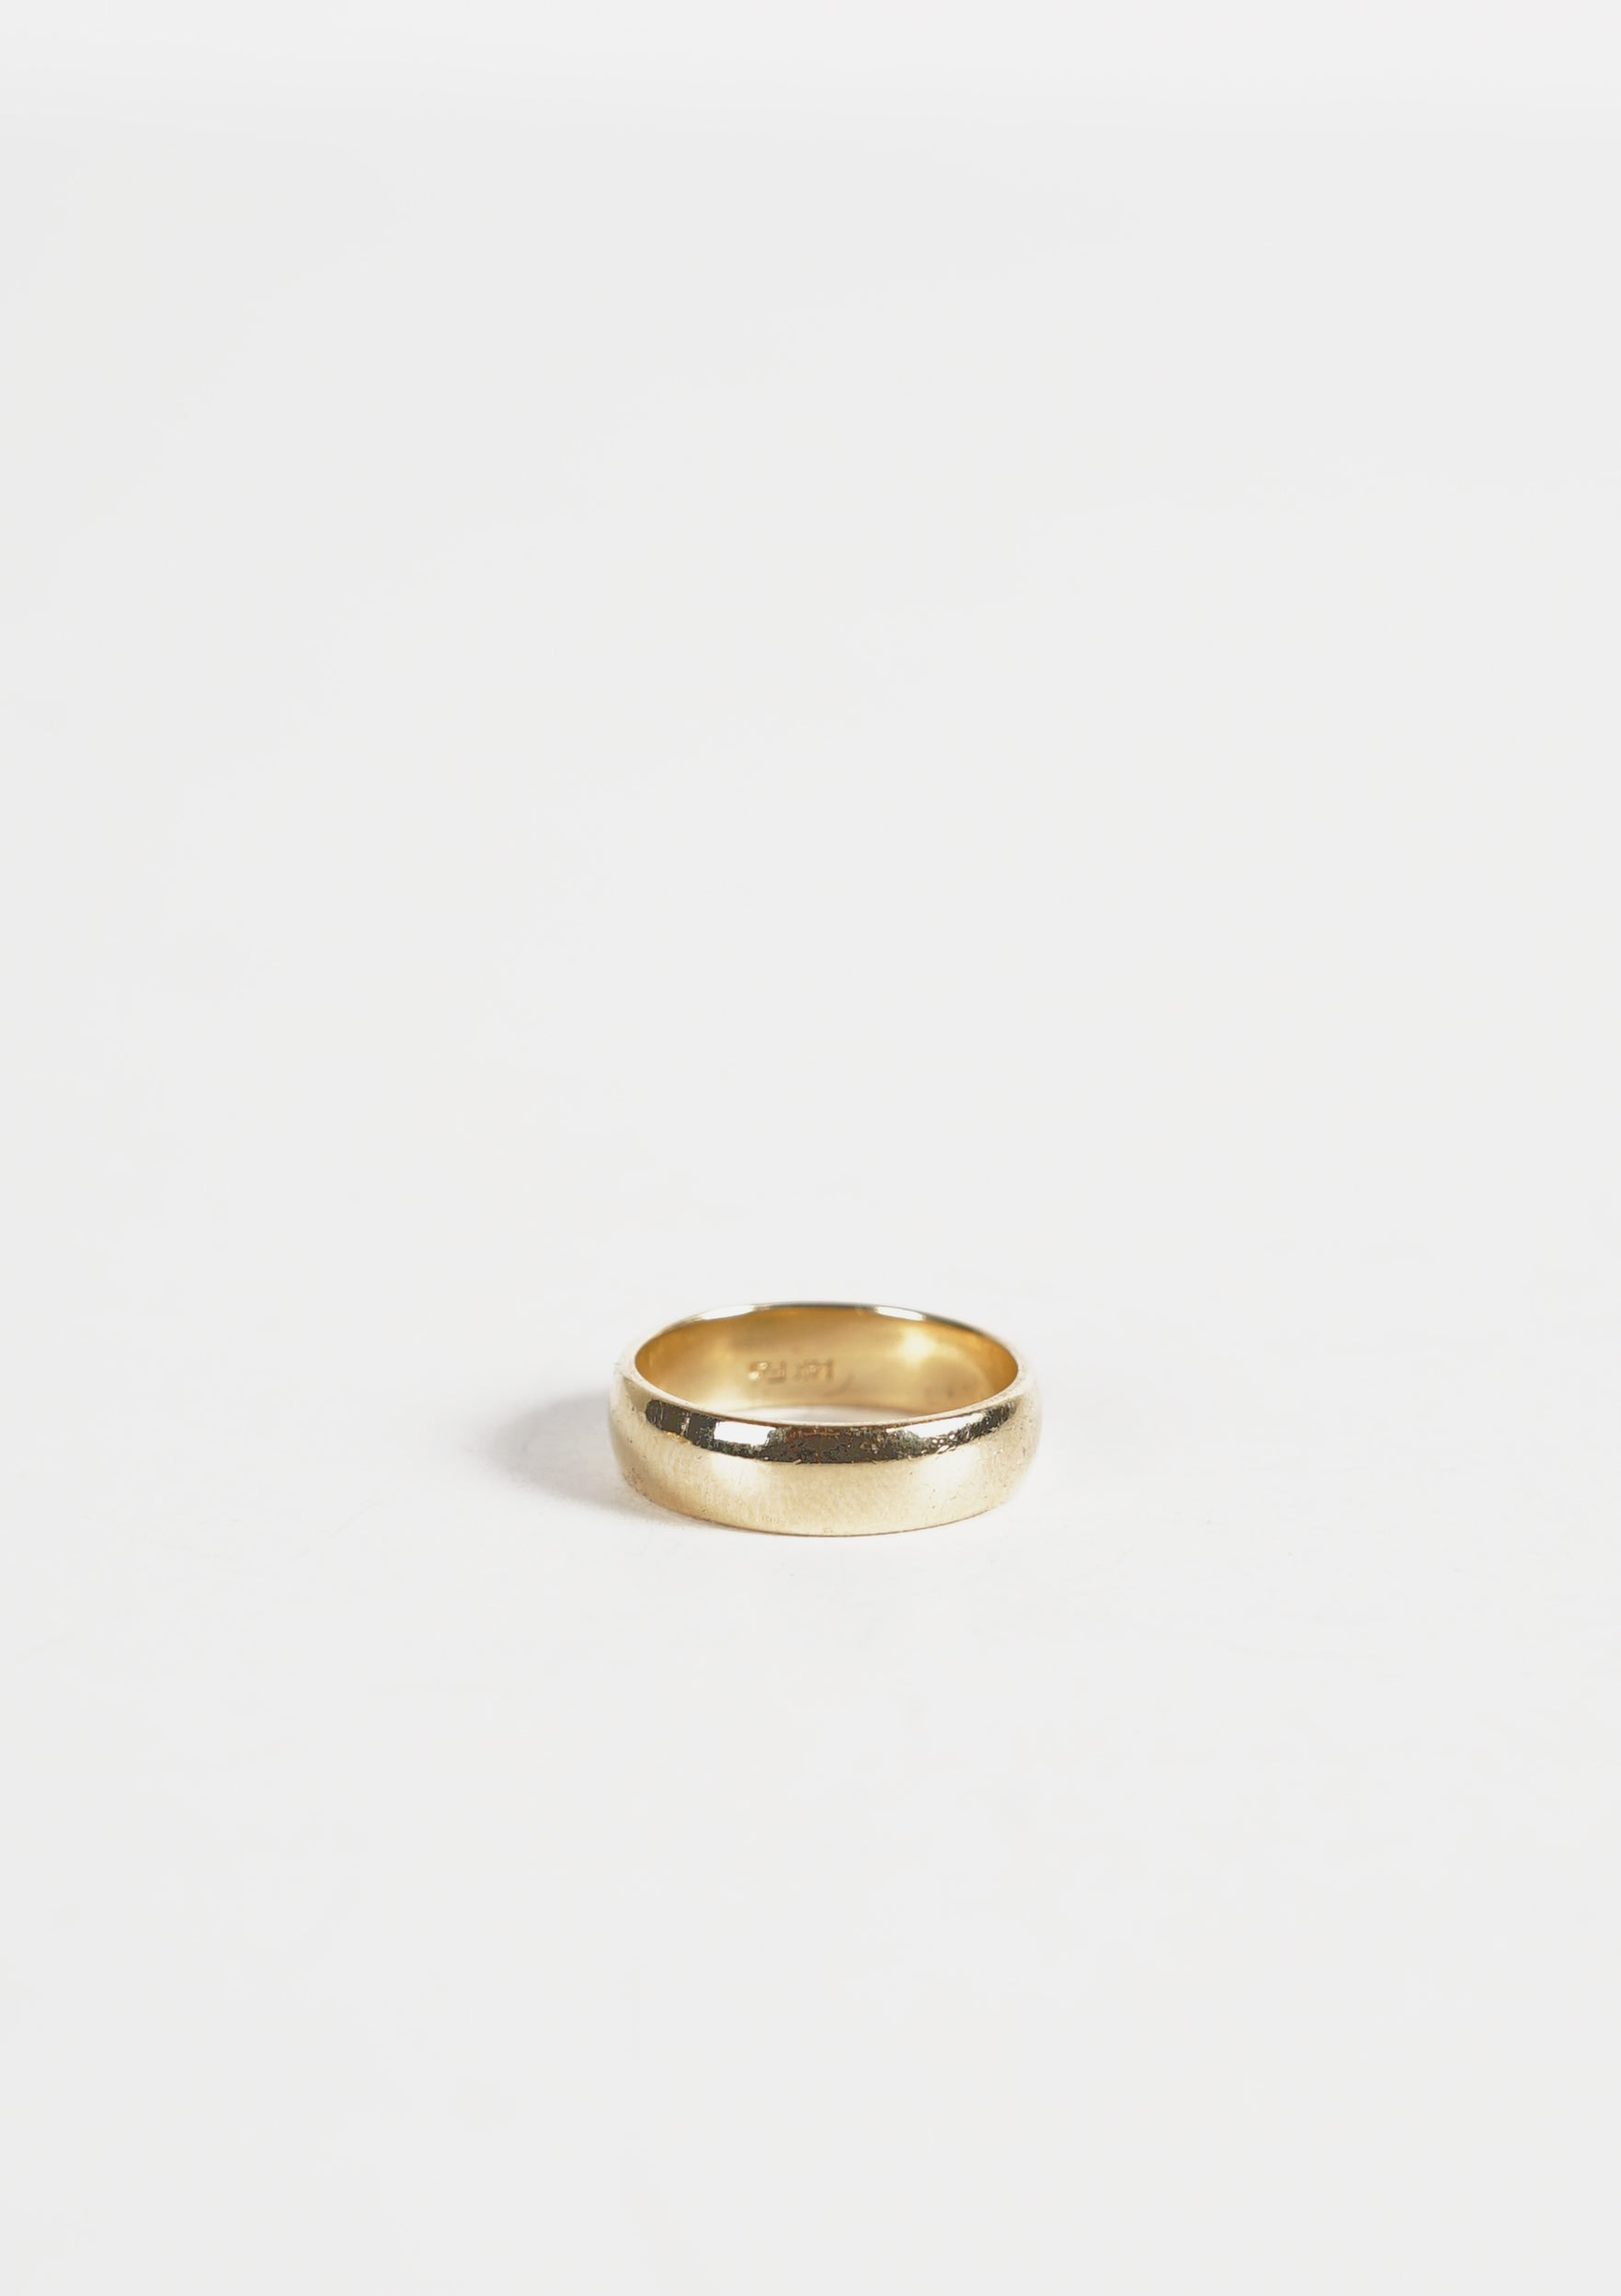 14k Gold Round Band Ring / 5mm